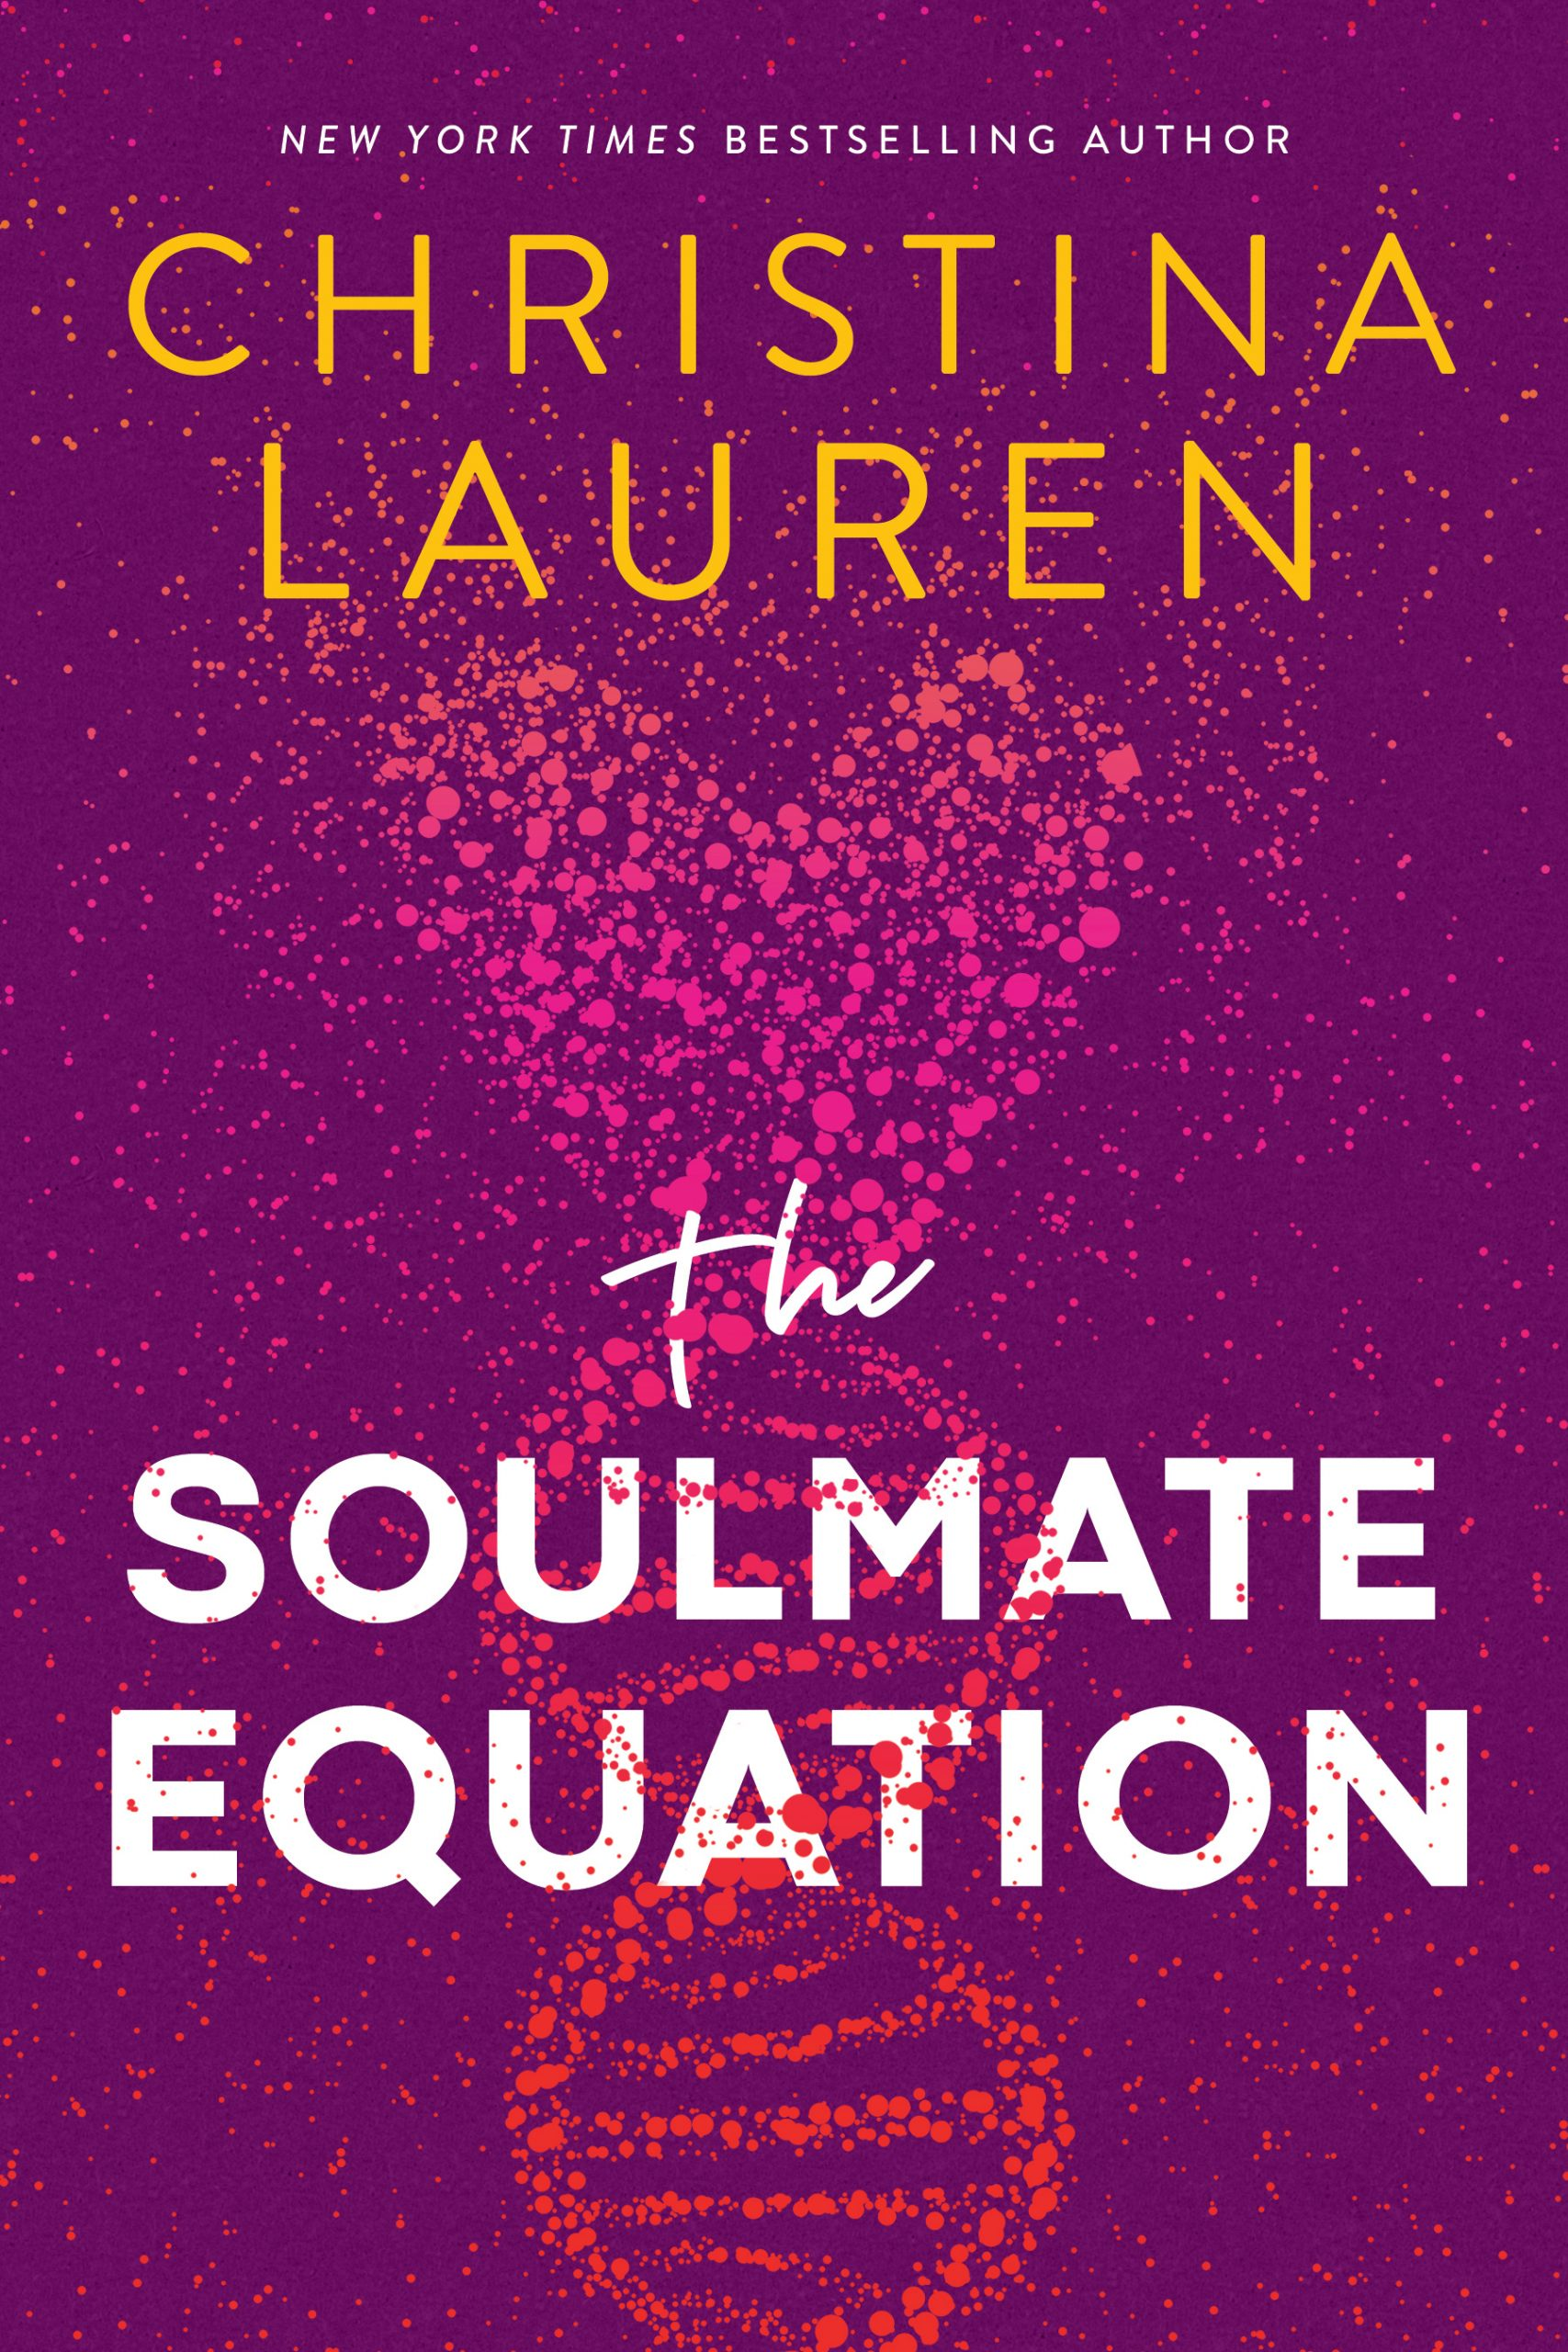 The Soulmate Equation Release Date? 2021 Christina Lauren New Releases